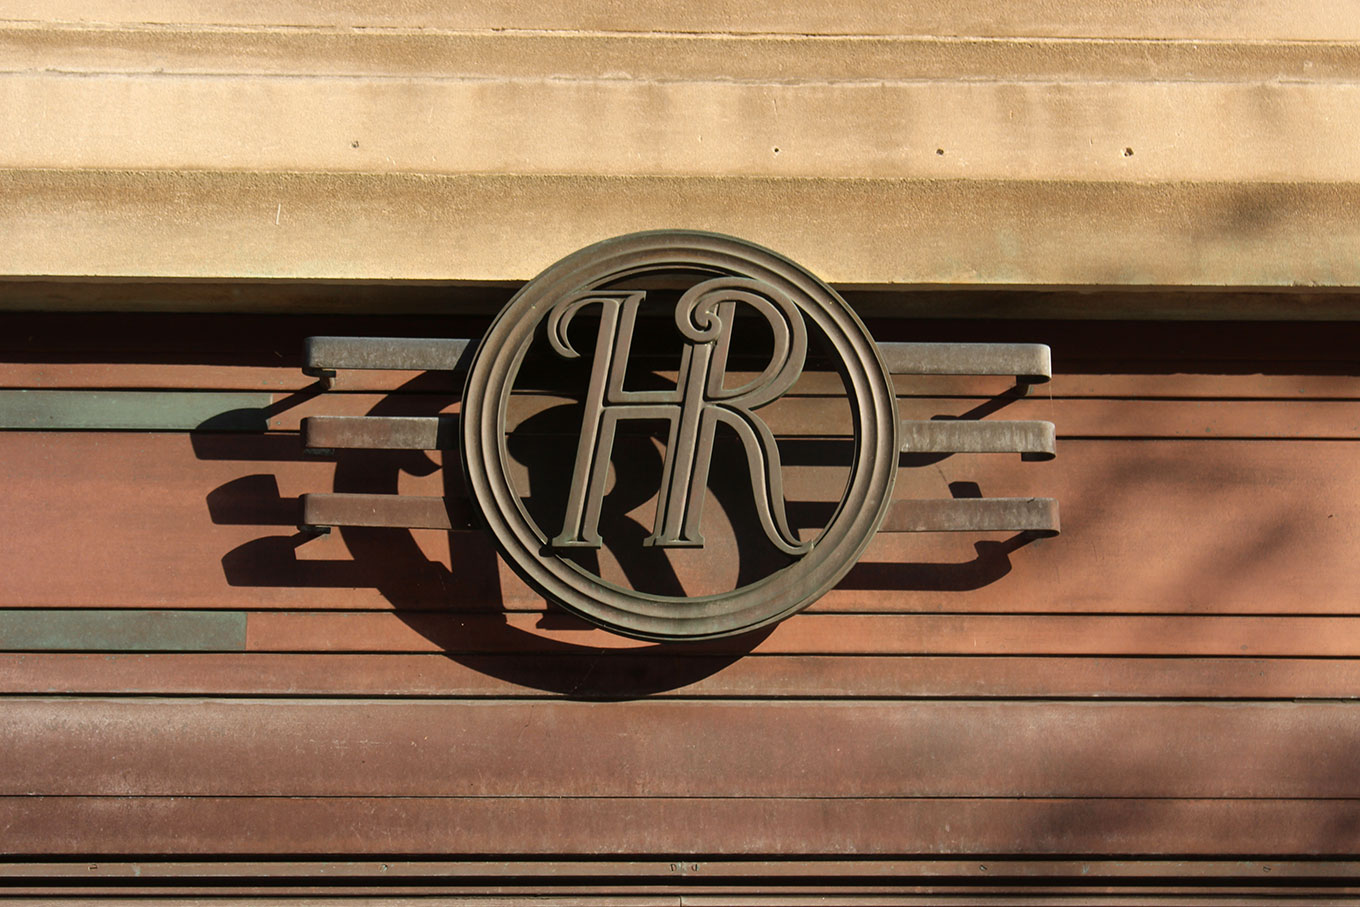 Monogram above the door of the Holt Renfrew Building on Sherbrooke Street West.